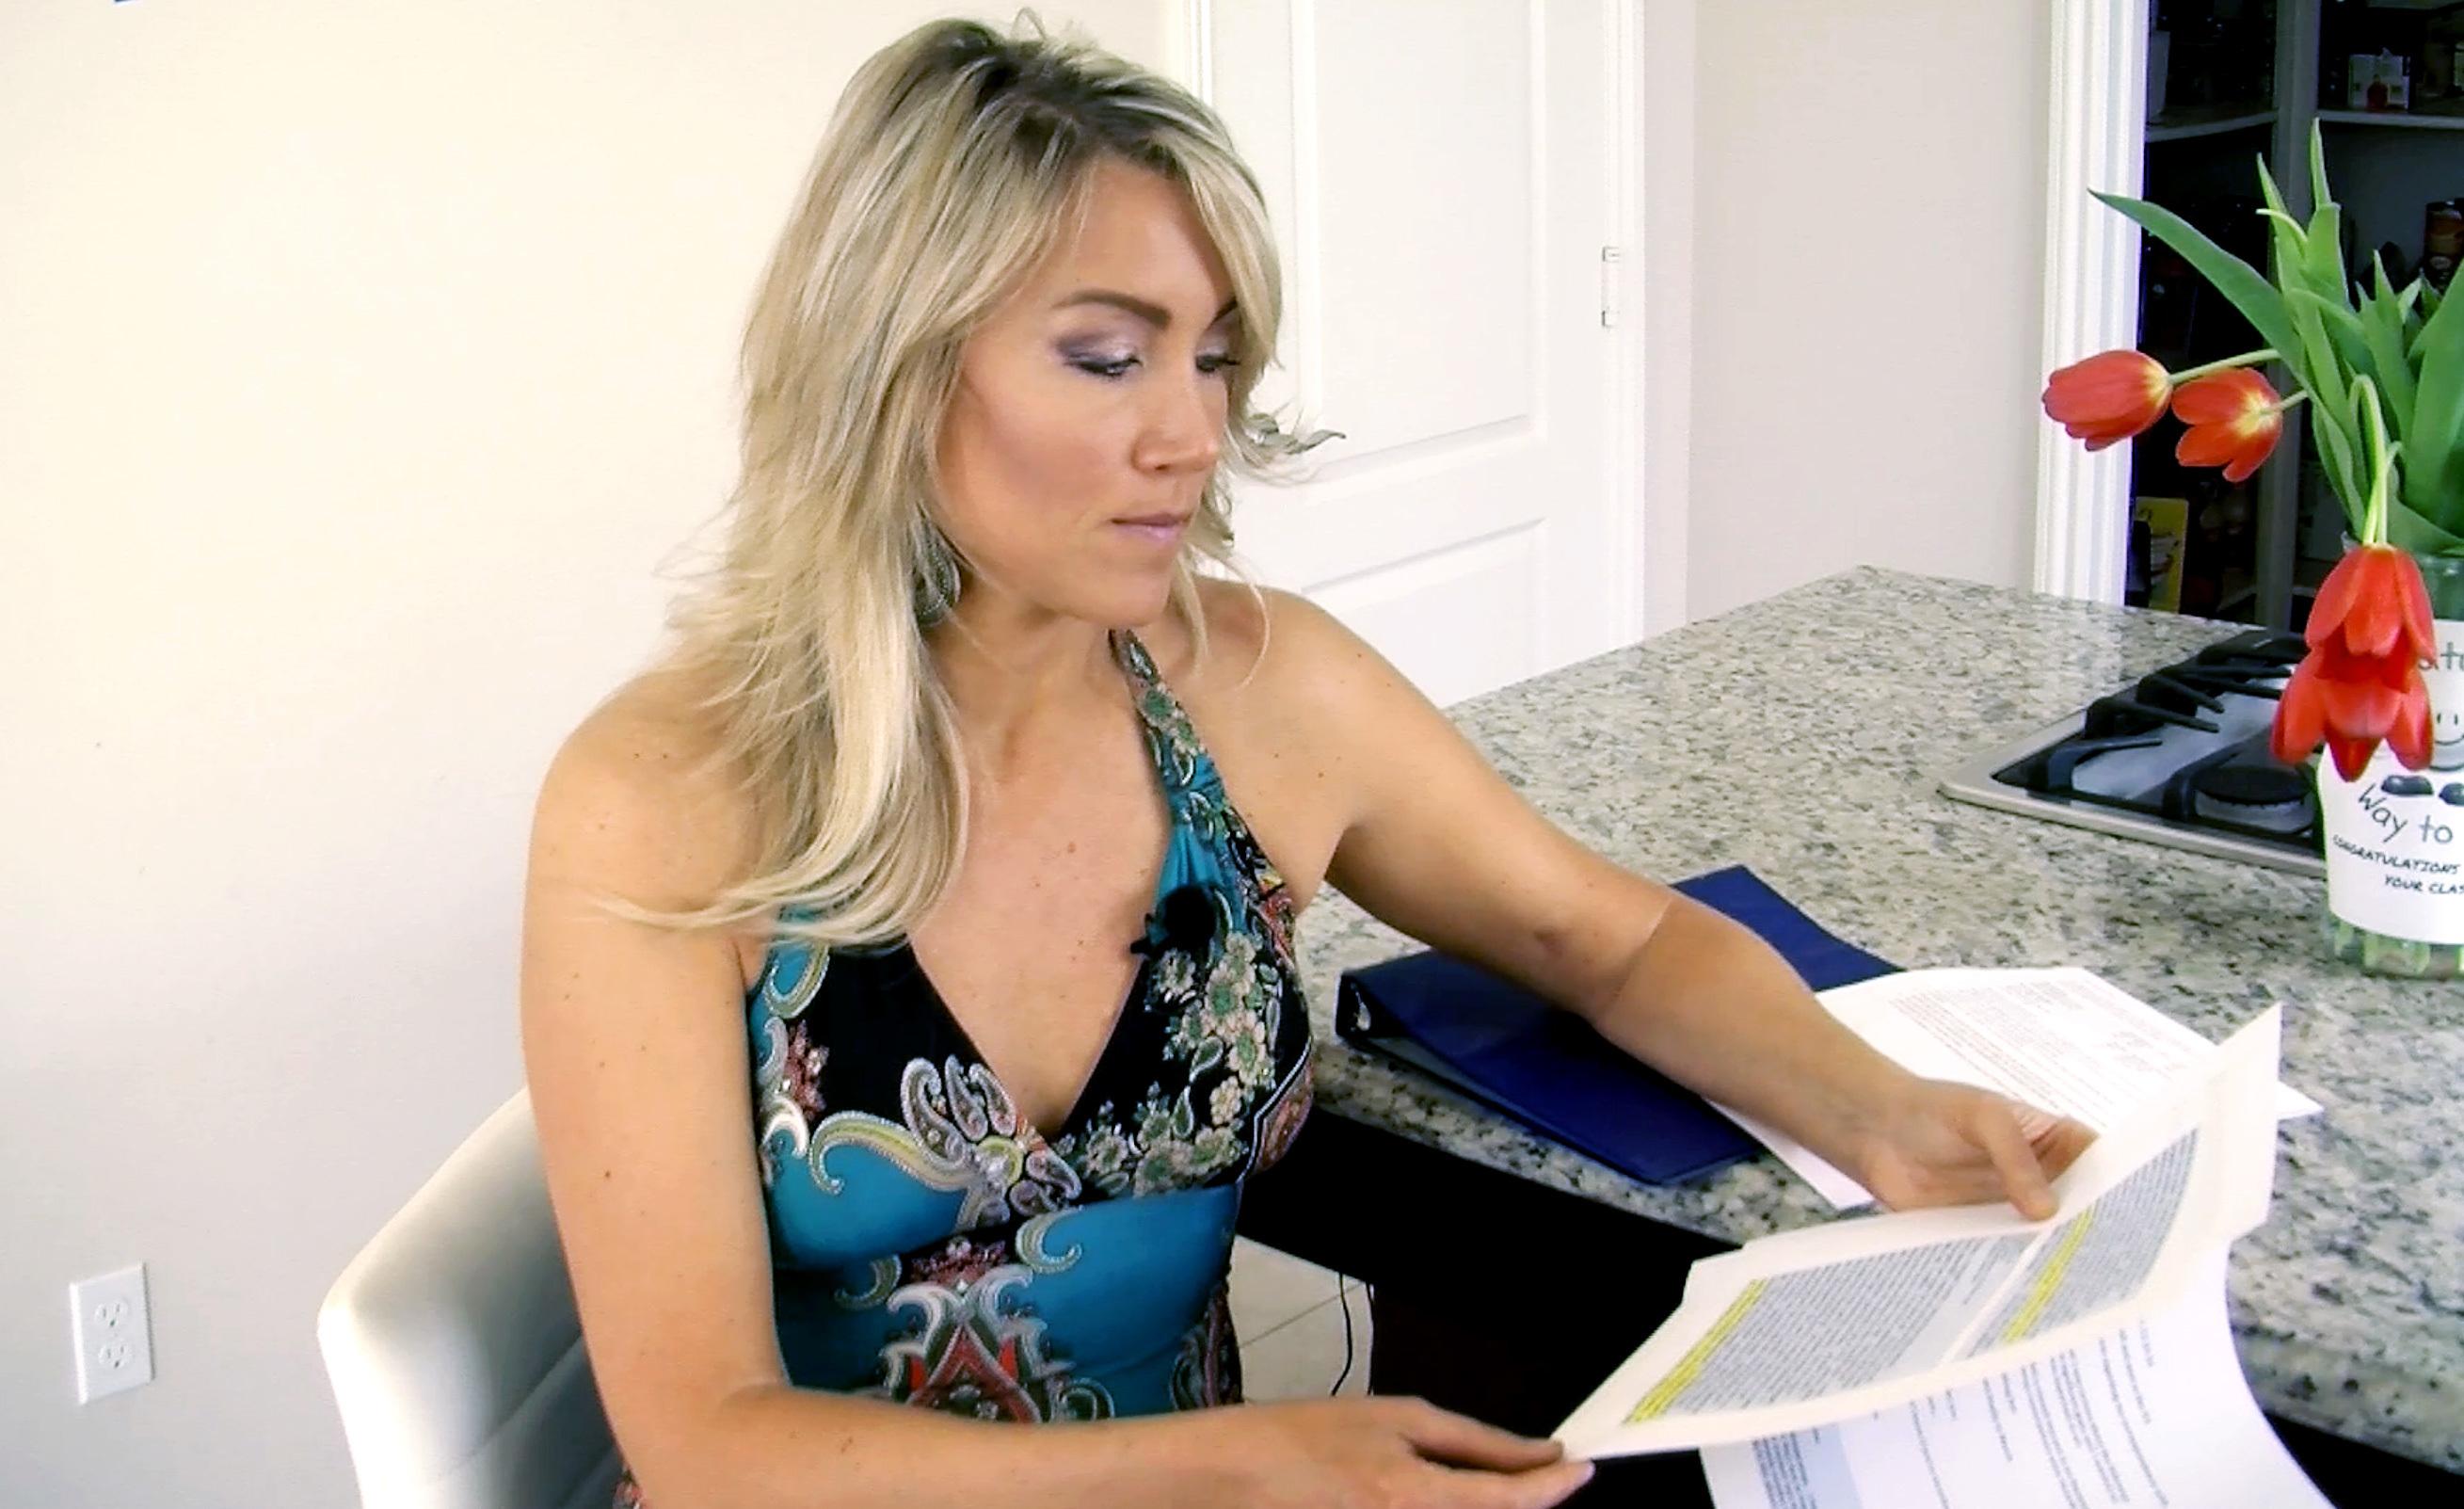 Navy veteran Amanda Wirtz looks through her correspondence with the Veterans Choice program. After the VA couldn't get her an appointment with a specialist, it sent her to the Choice program. But she still was unable to get an appointment for several months. Courtesy of KPBS